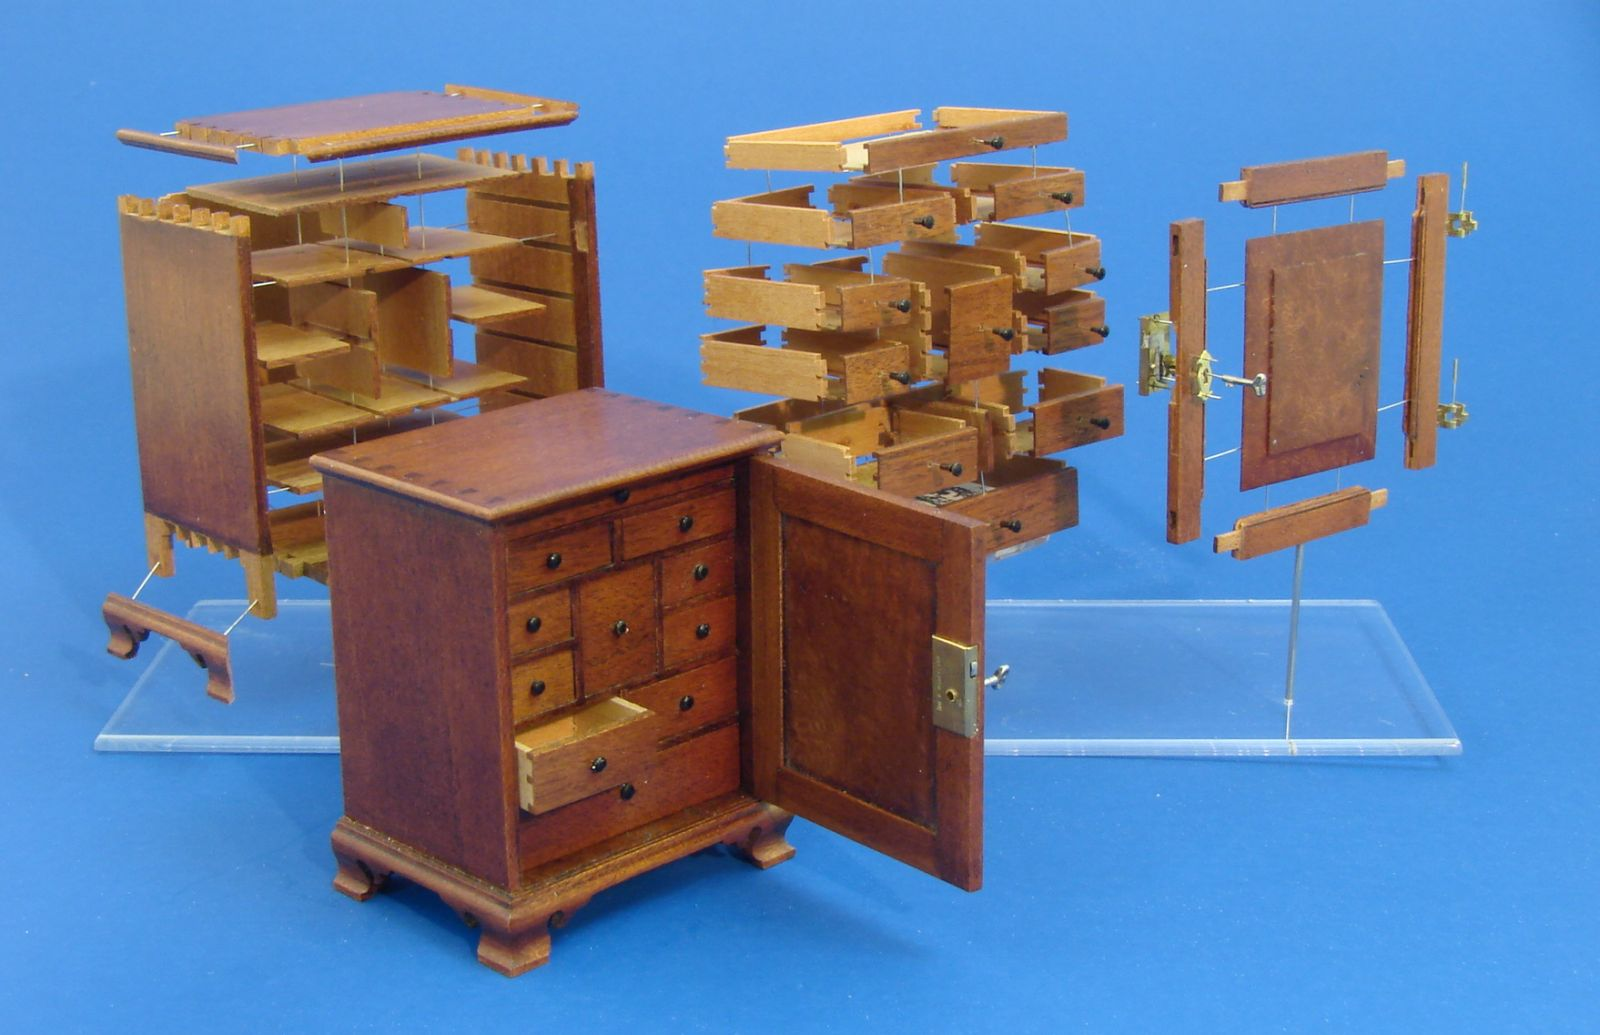 Exploded View of a Chester County Spice Chest by Wm. R. Robertson